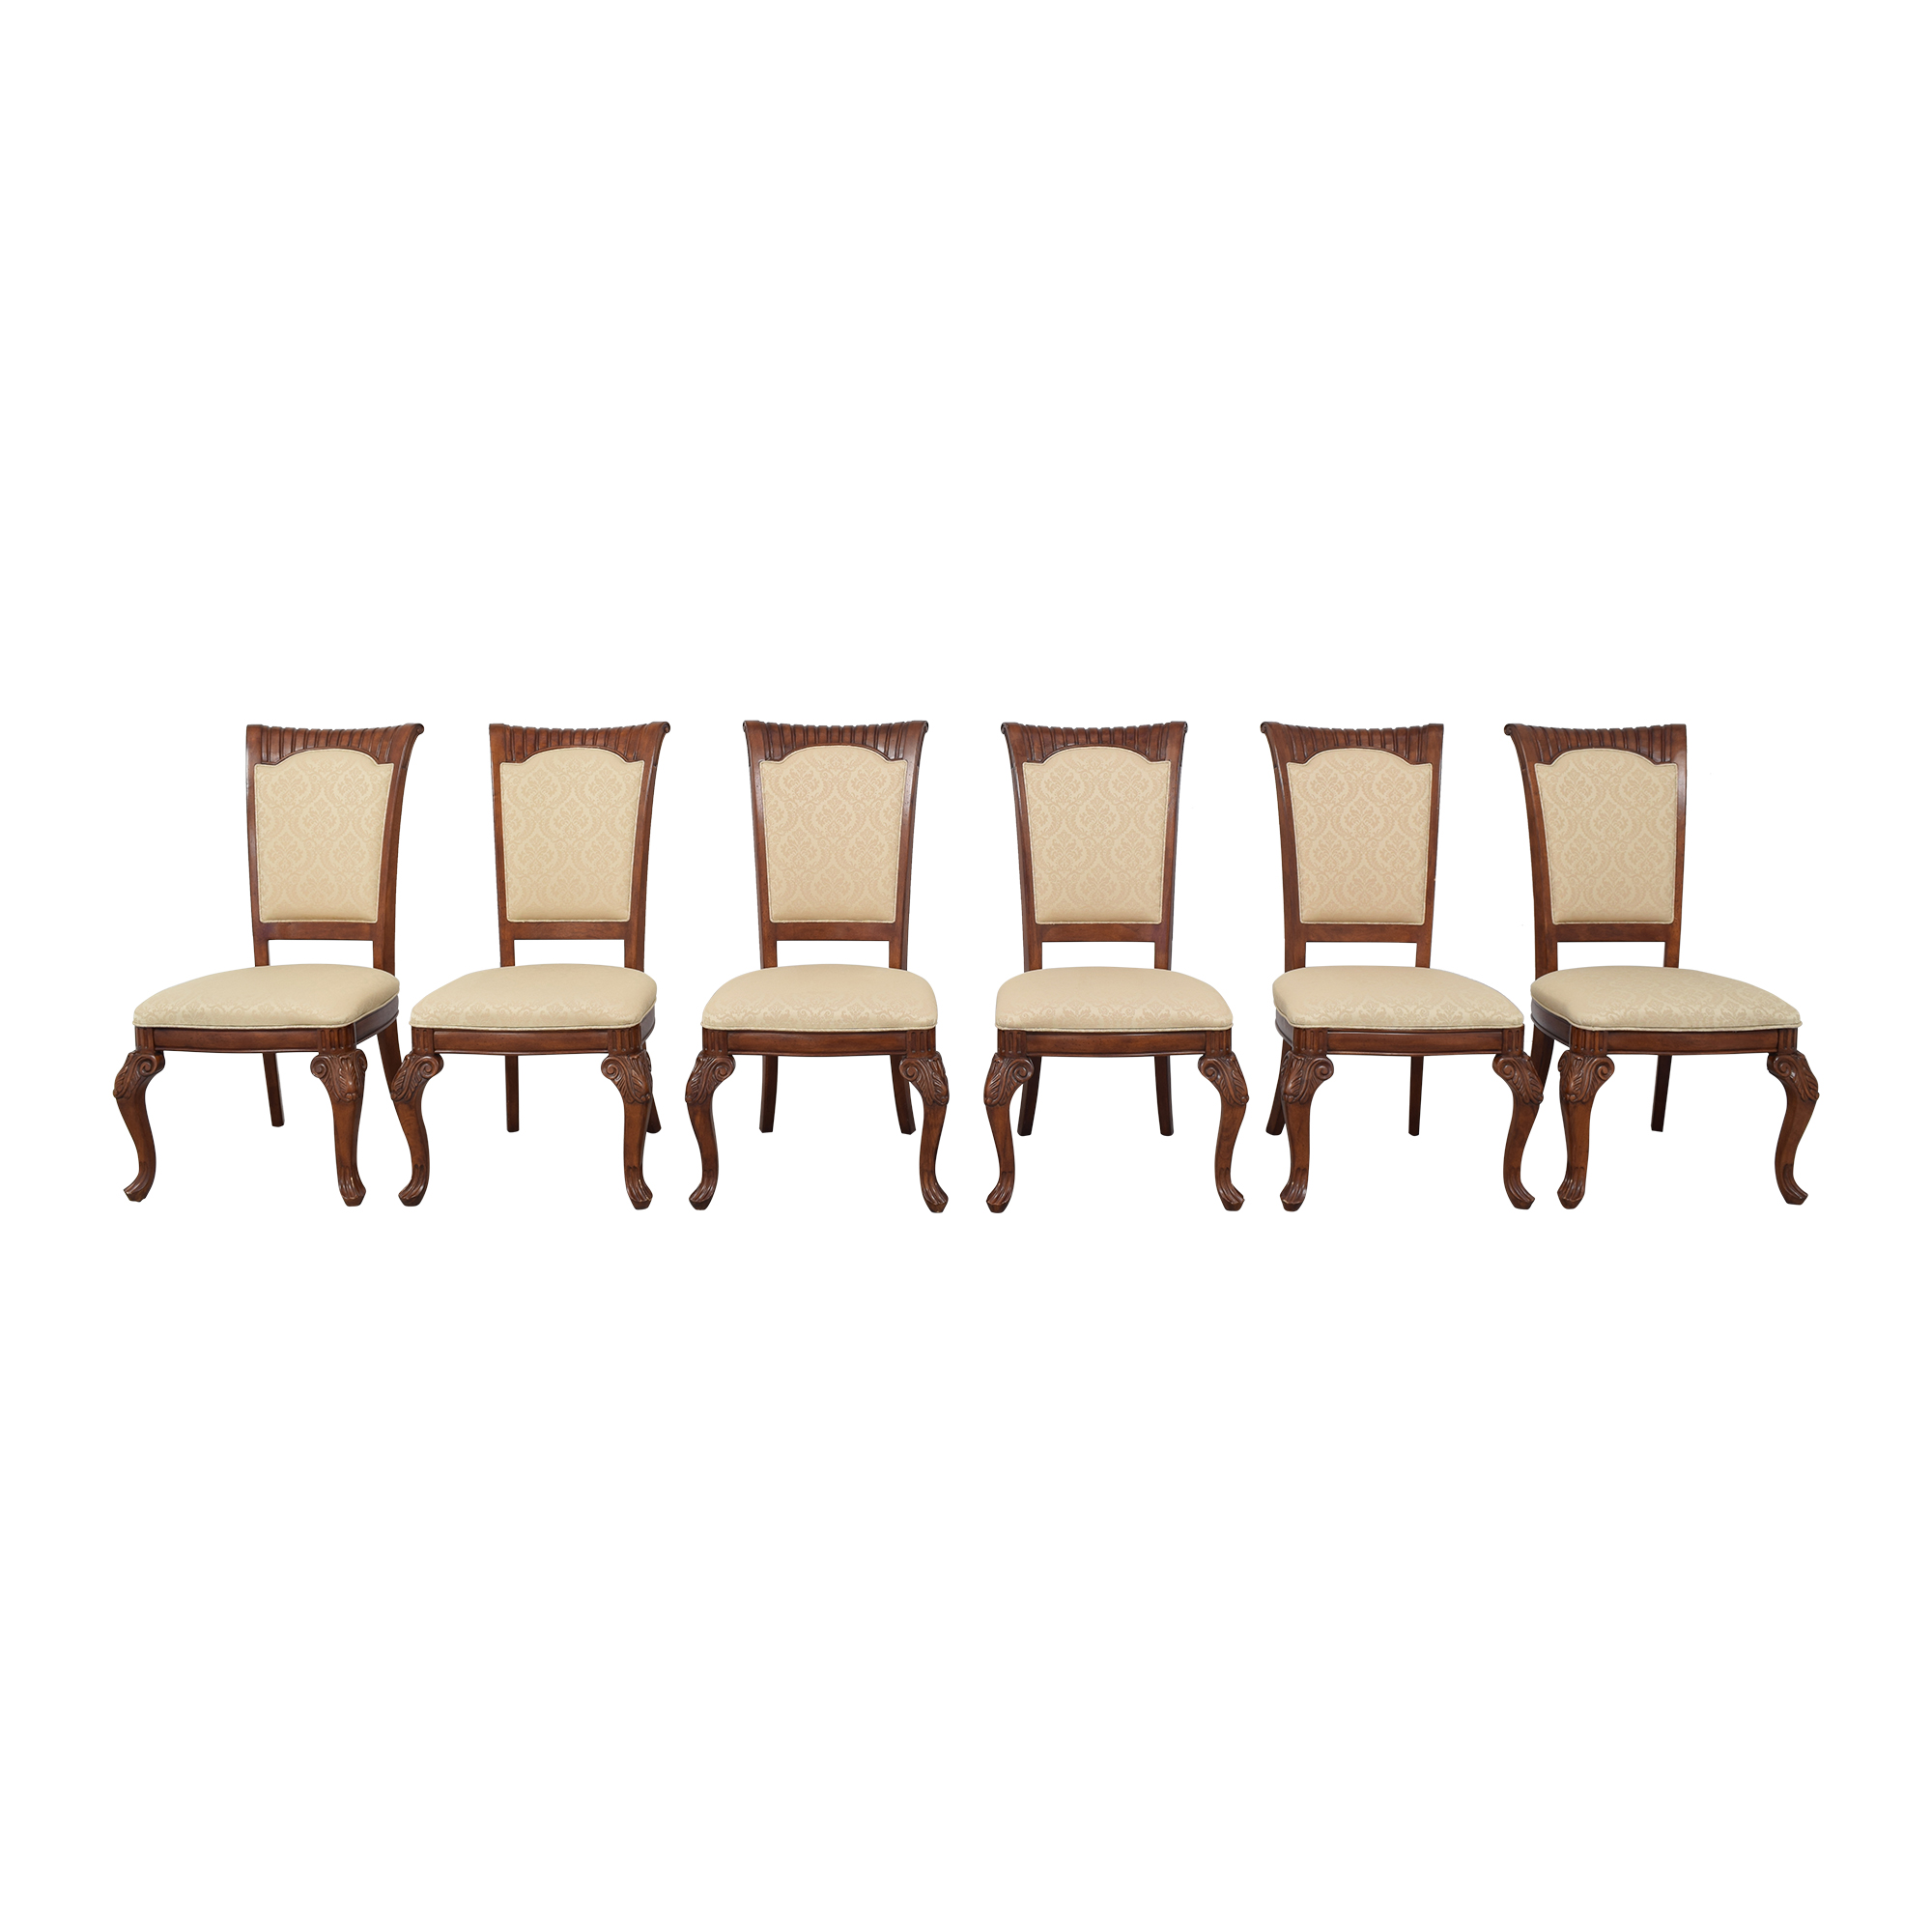 Stanley Corinthian Dining Chairs sale